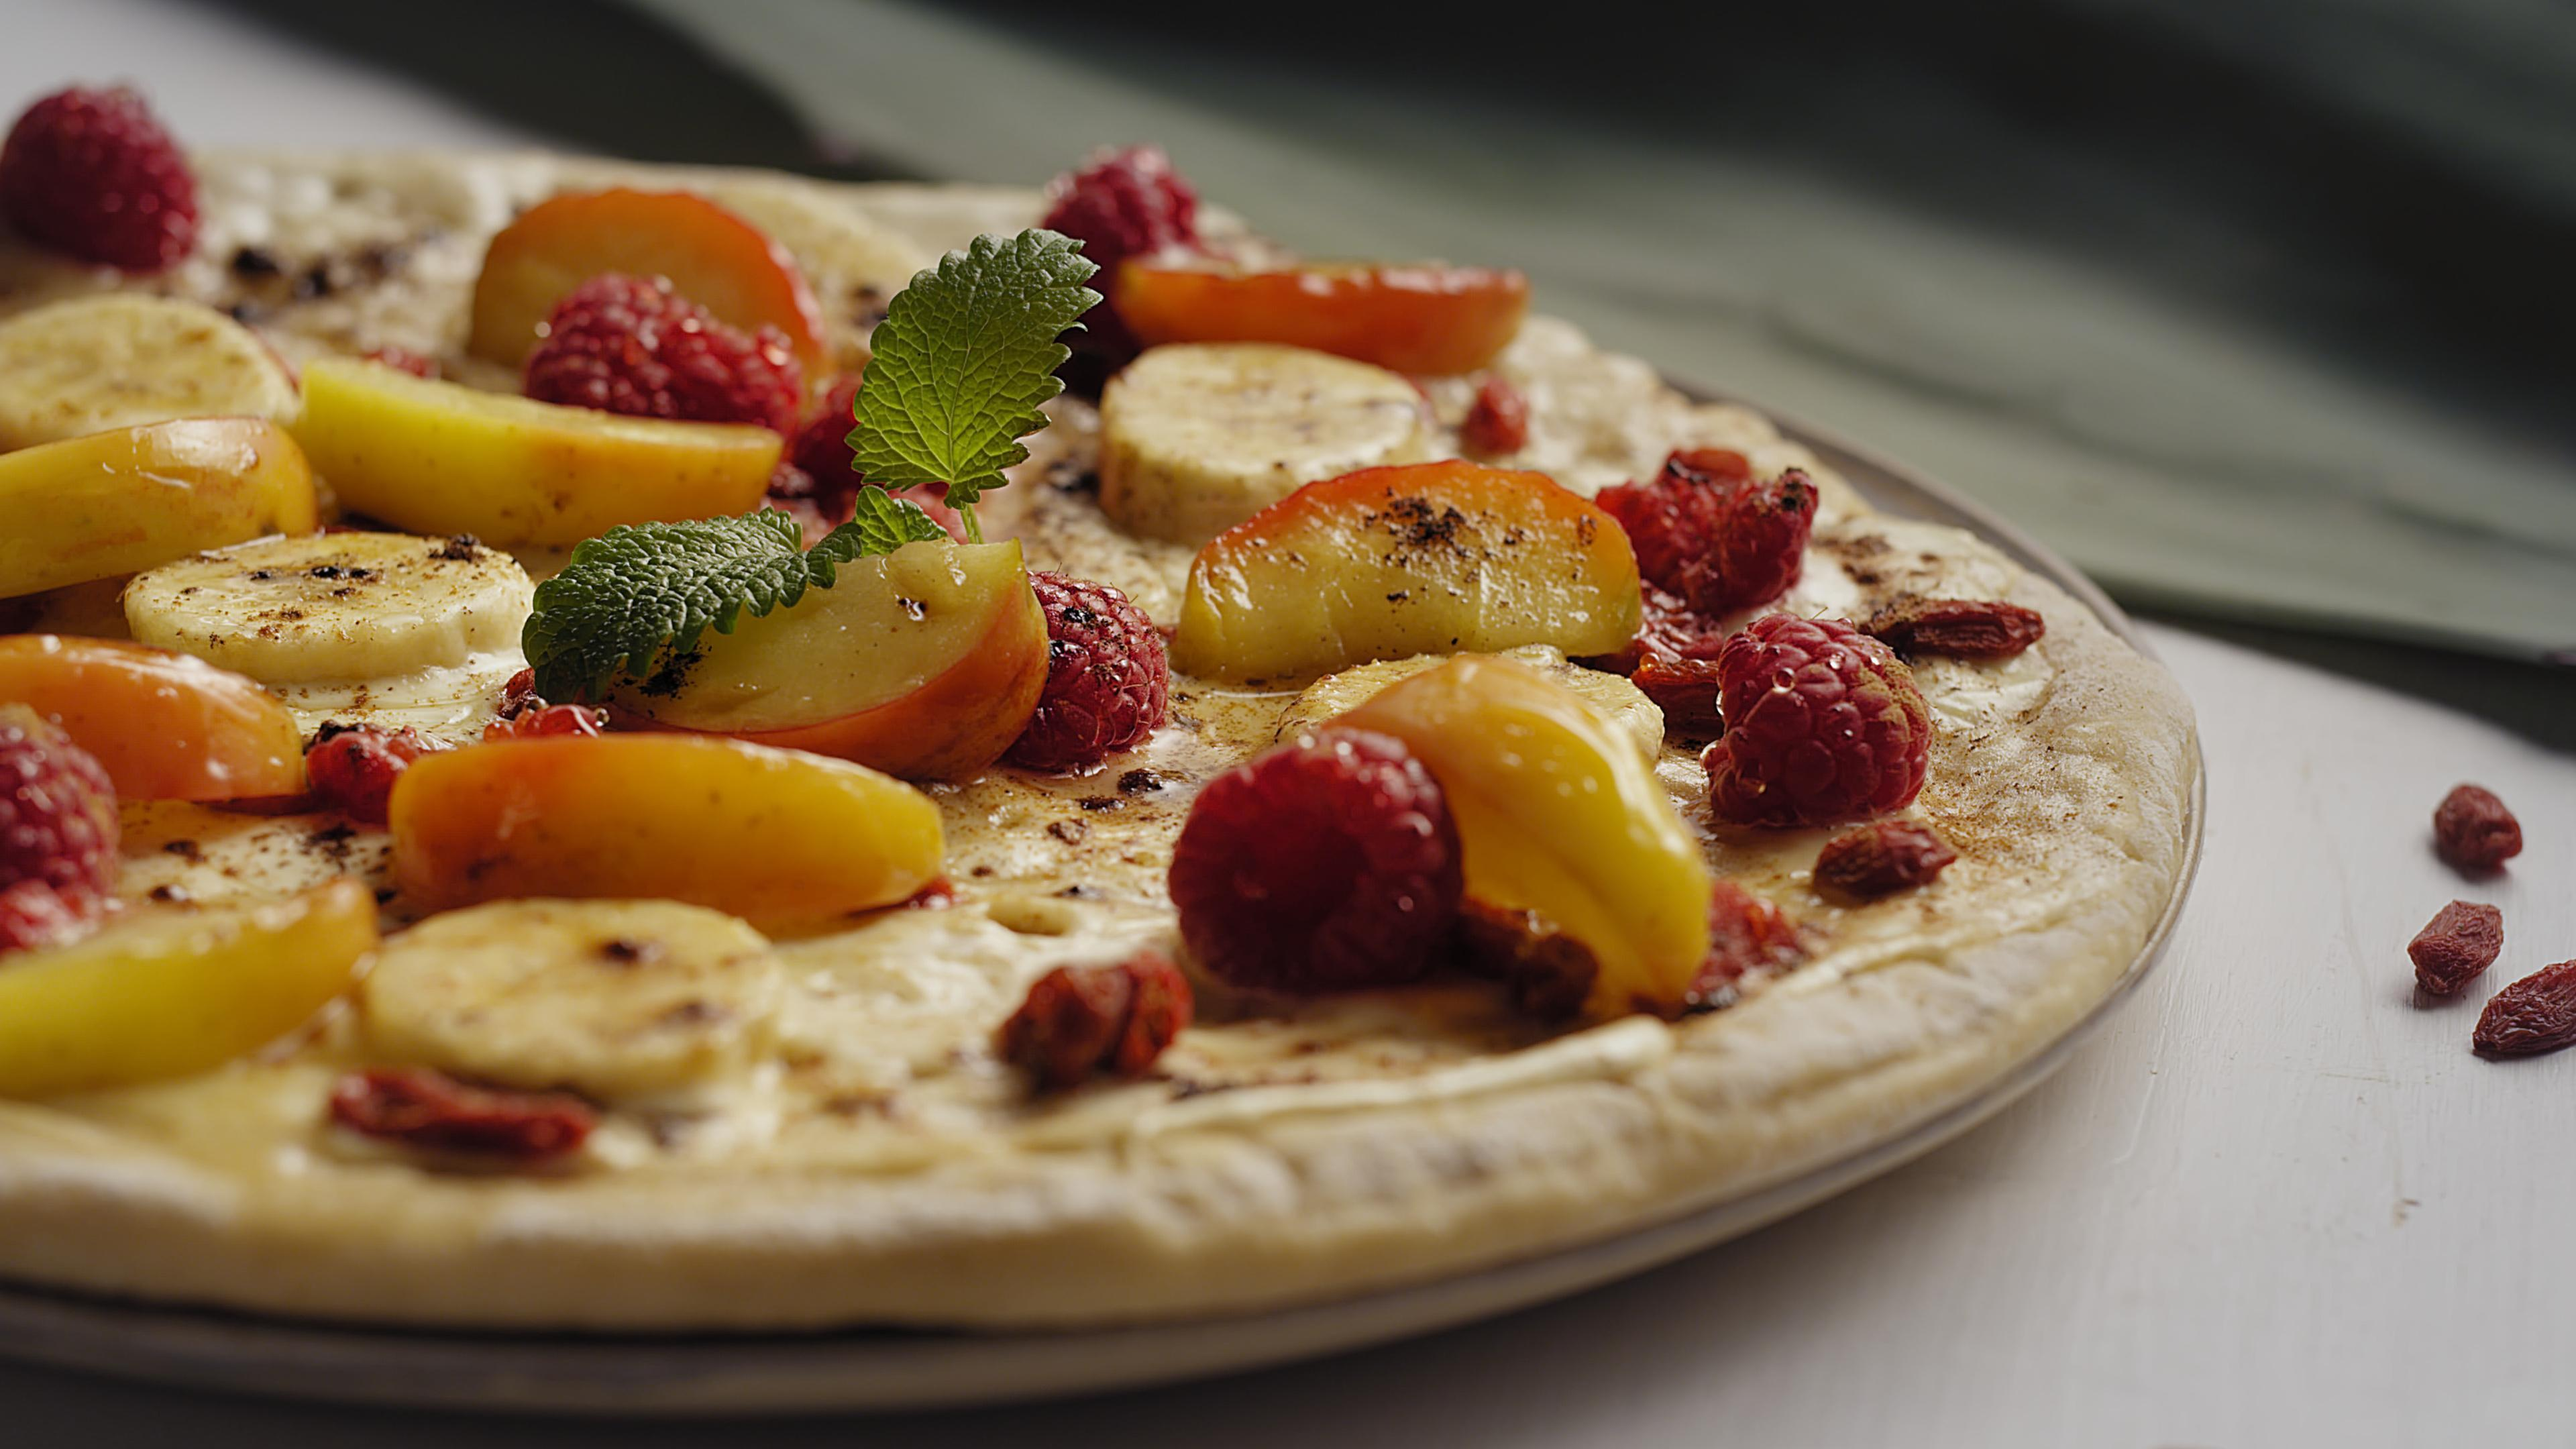 #3 Fruit pizza